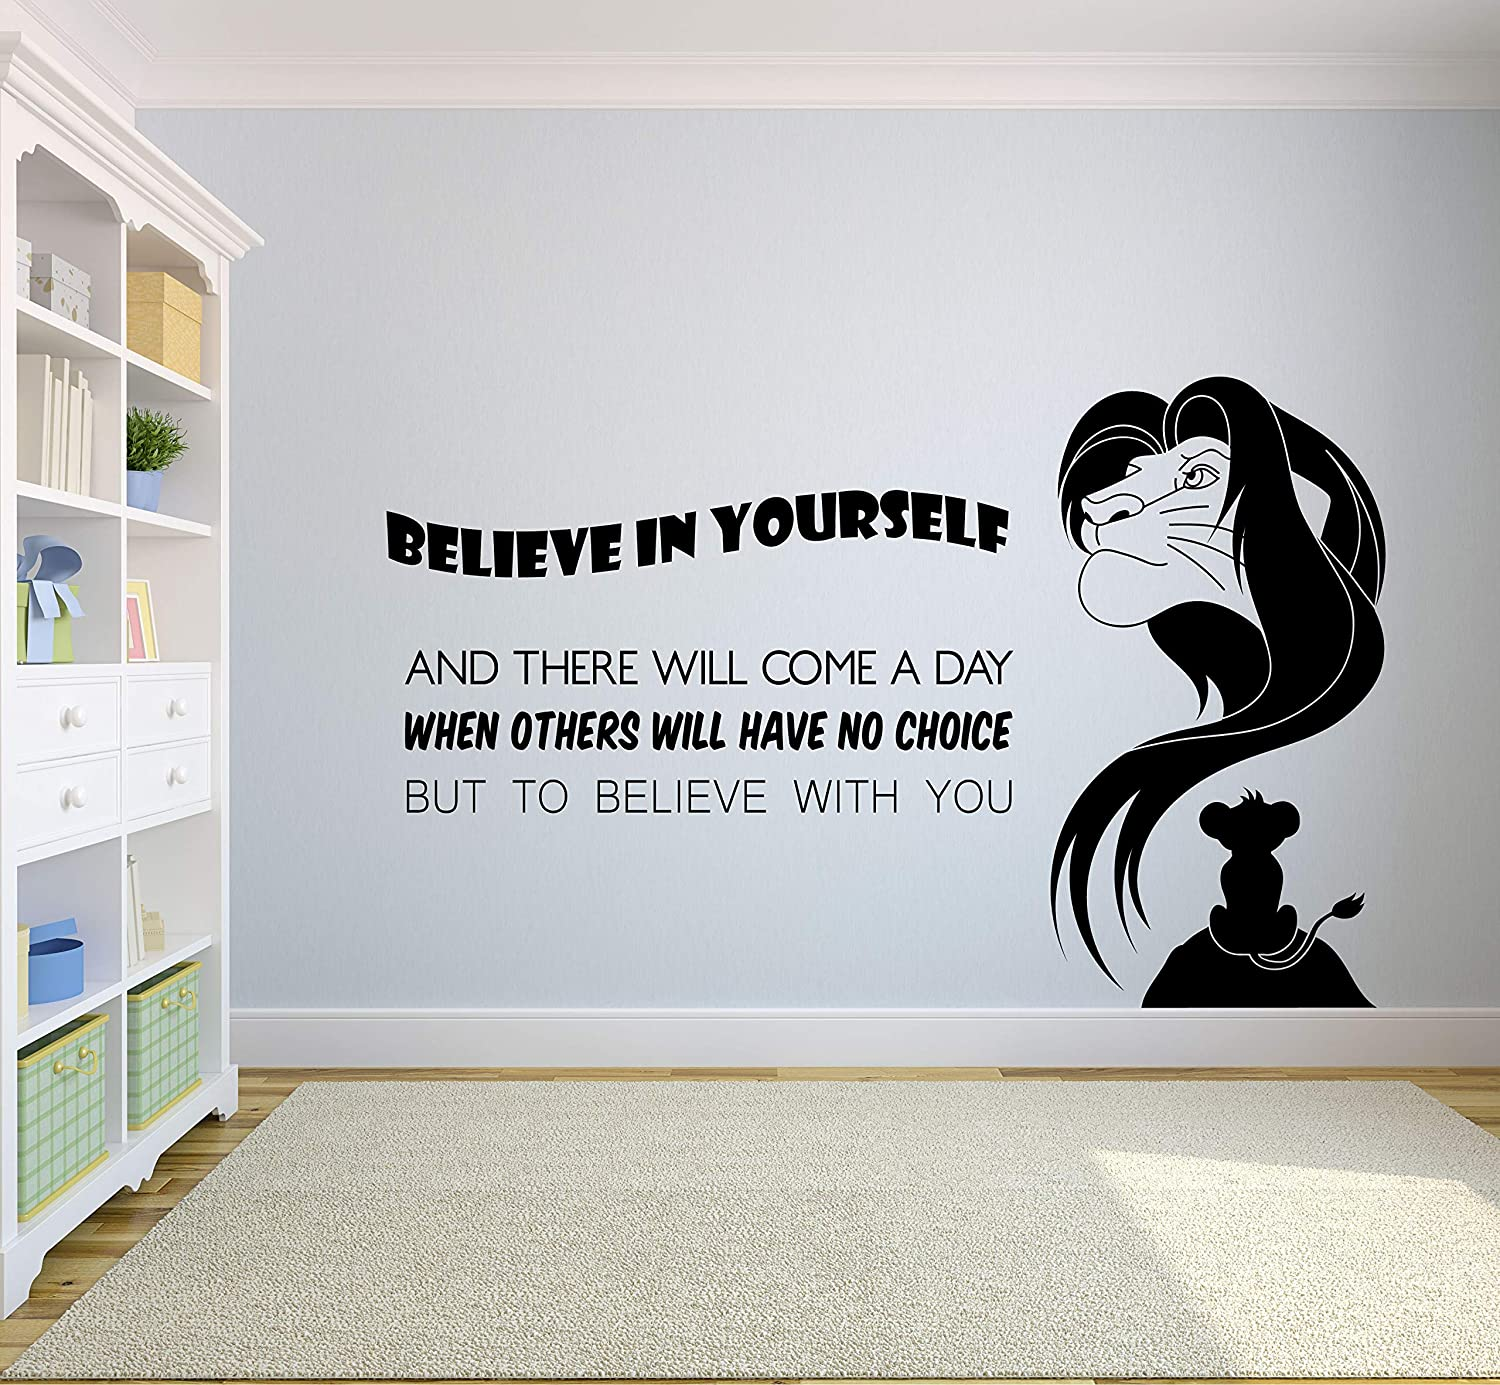 The Lion King Quotes Wall Decals for Kids Rooms Mufasa Simba Decor Boys Girls Children Creative Animated Vinyl Decal Removable Stickers for Bedroom Artwork Child Favorite Decoration Size (18x20 inch)